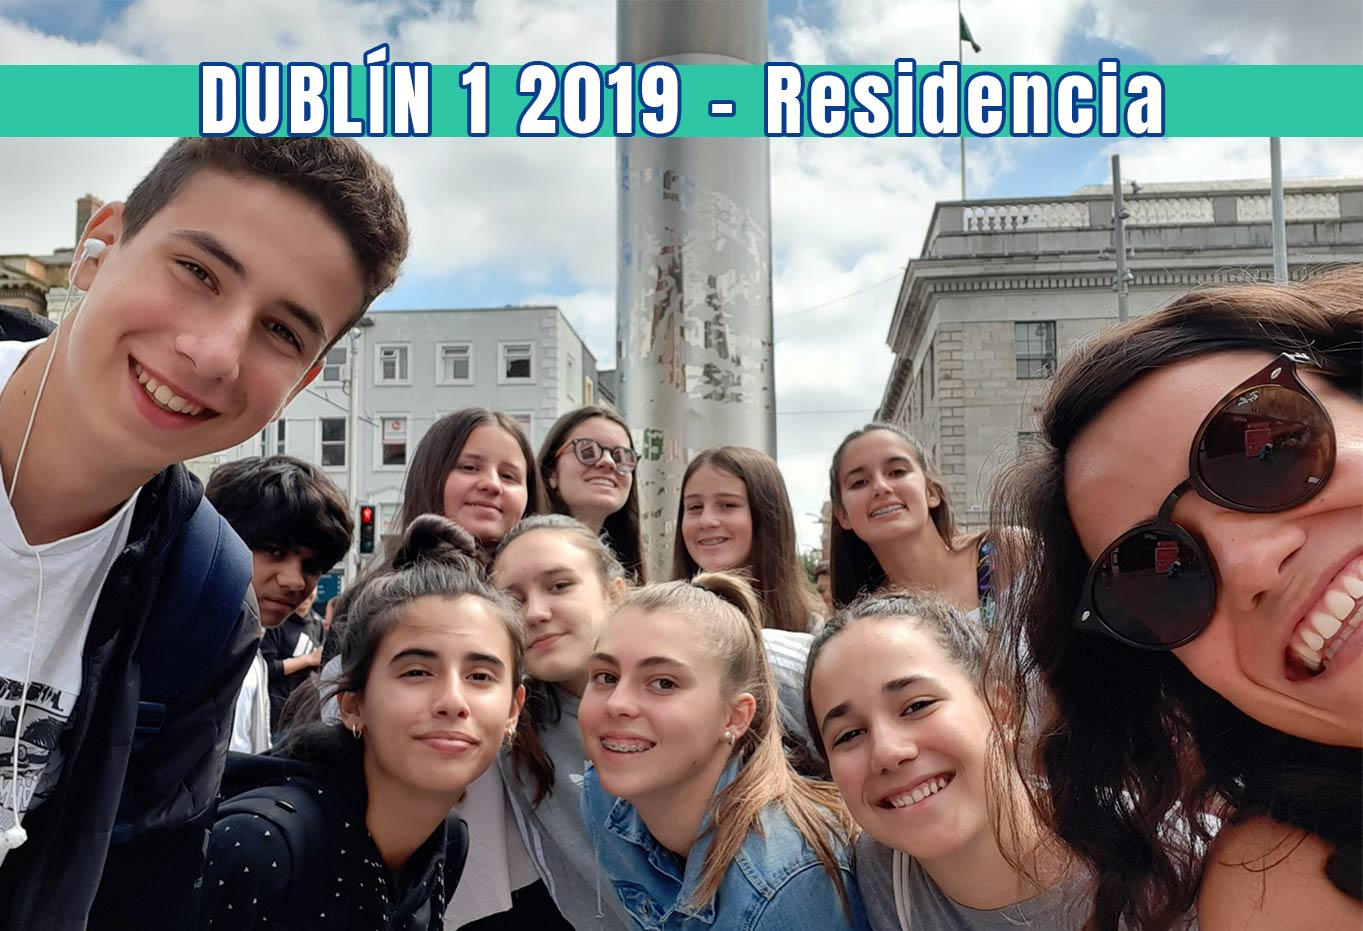 Program Review: DUBLÍN 1 – Residencia